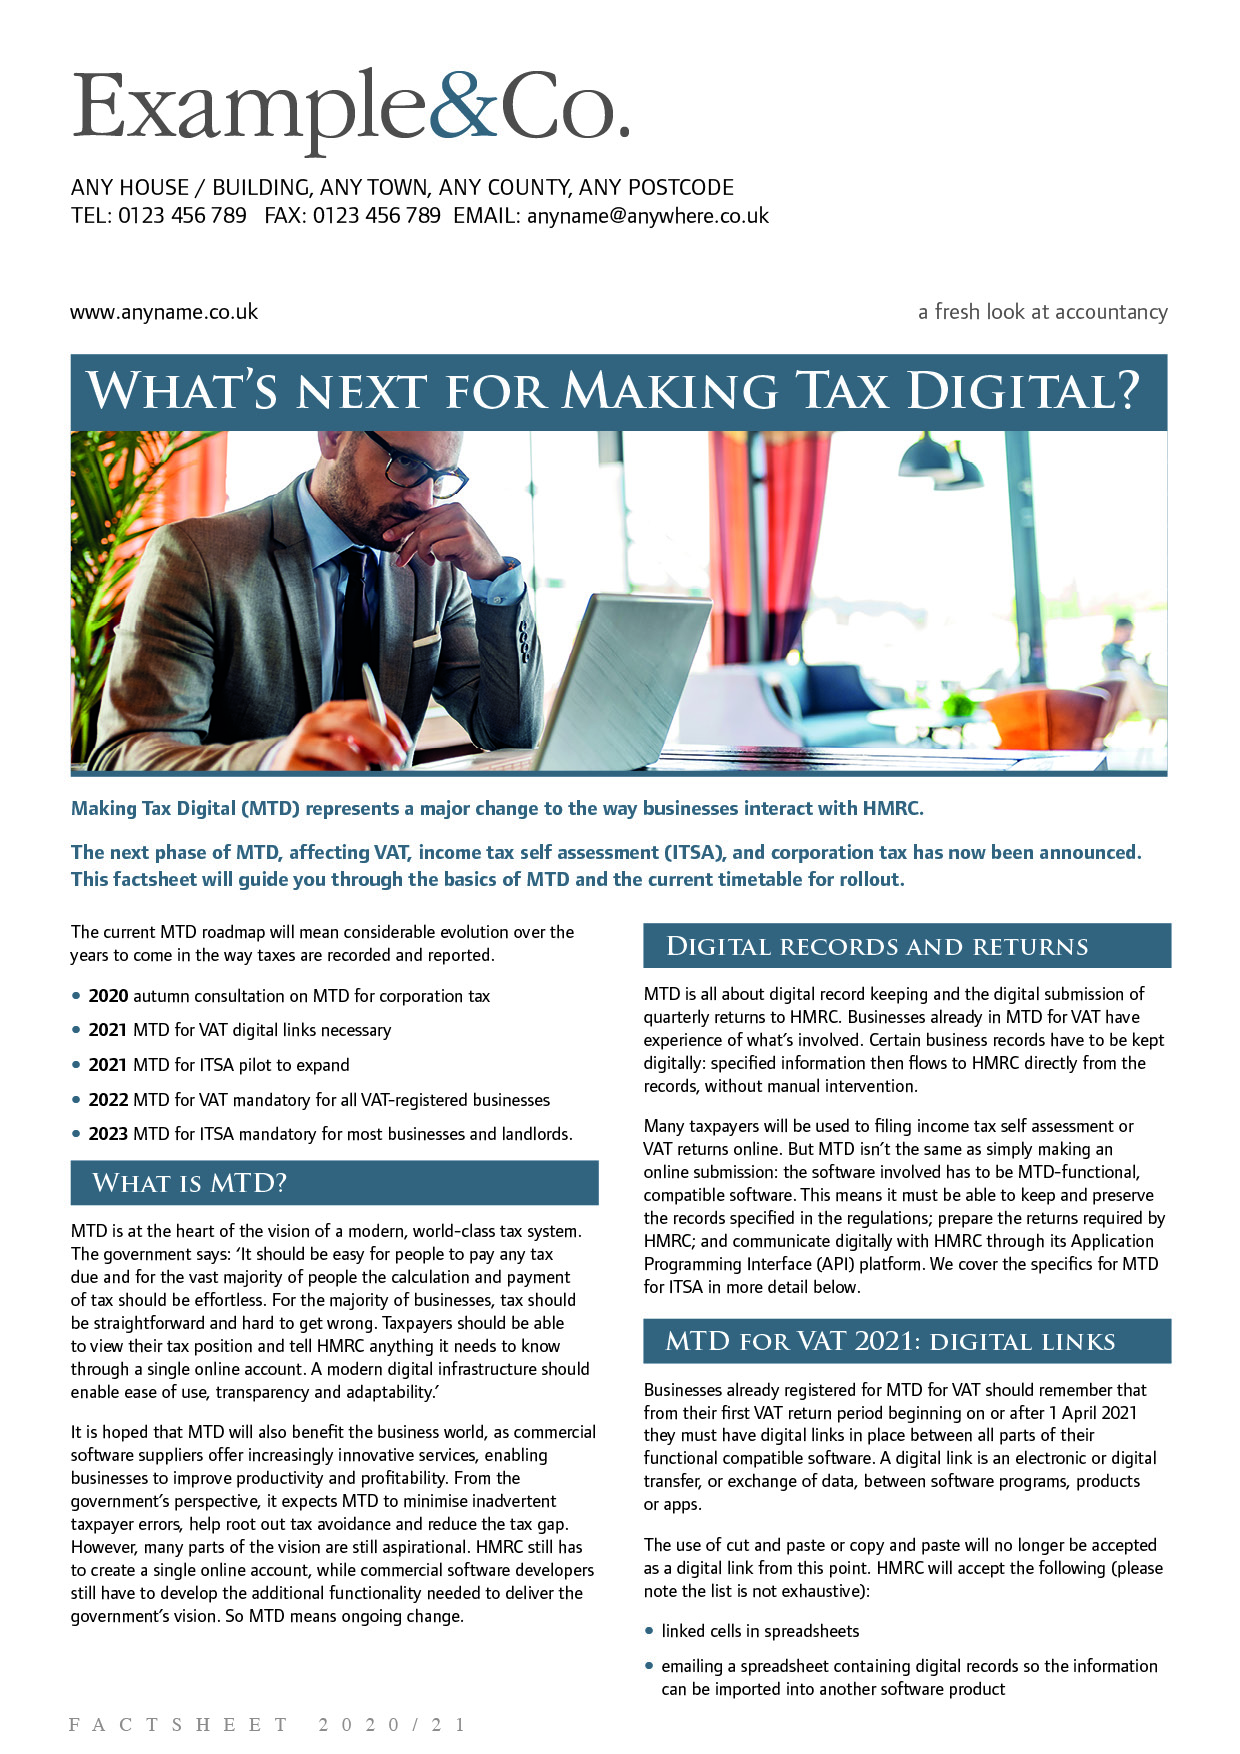 What's next for Making Tax Digital?